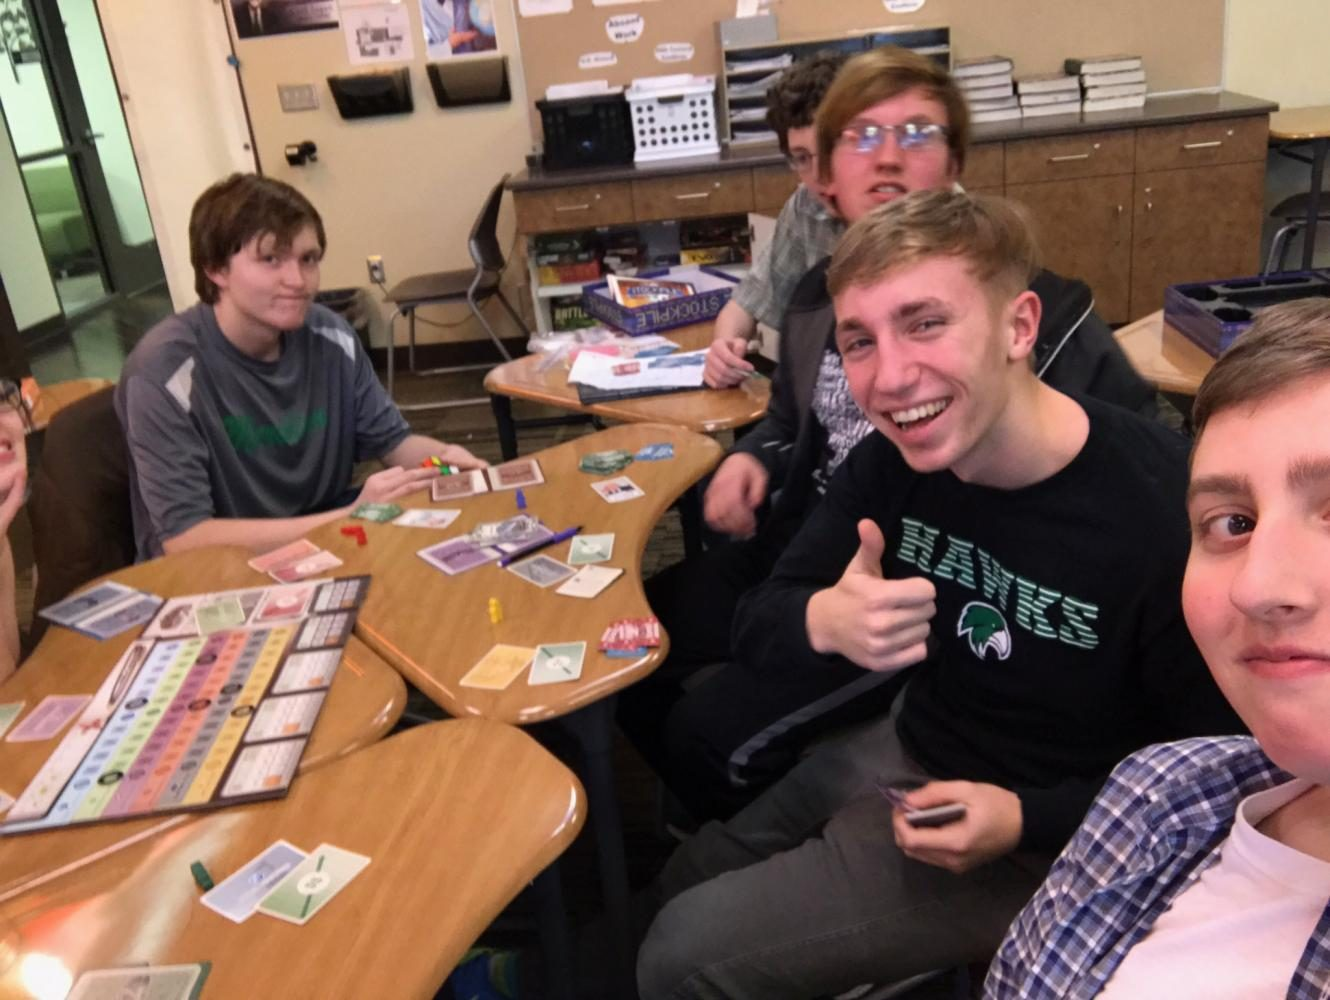 Yahtzee%21+Playing+board+games+helps+students+have+fun+and+make+friends.+%22I+don%27t+like+many+people+at+this+school+but+this+club+has+helped+me+meet+more+people%2C%22+said+junior+Colby+May.